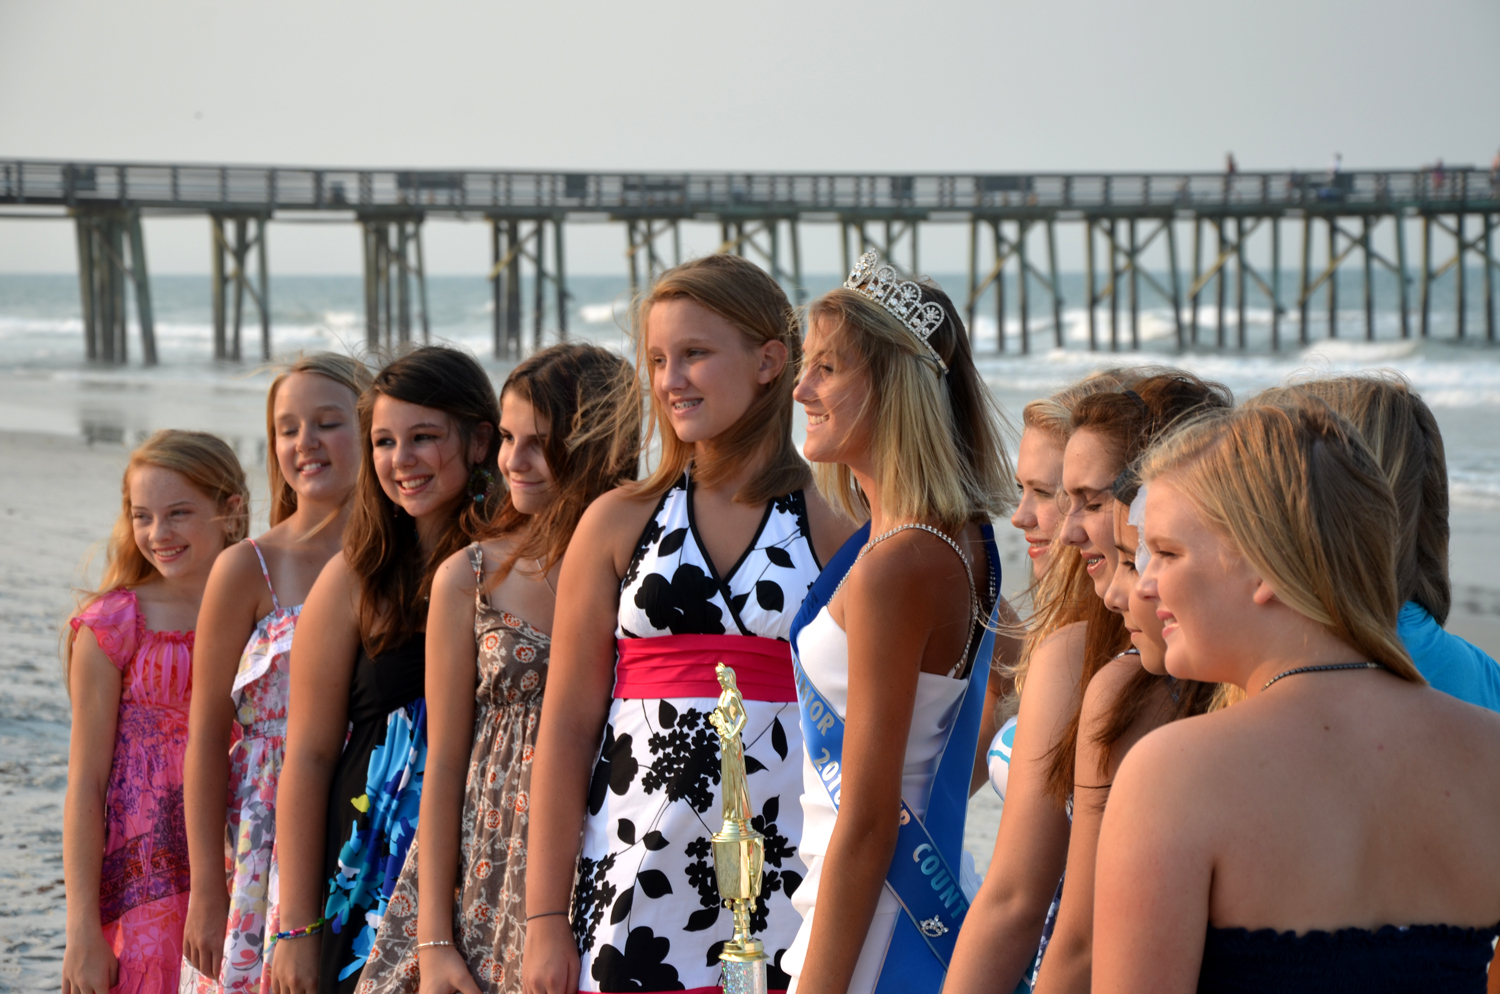 Pier review: The Miss Junior contestants. Click on the image for